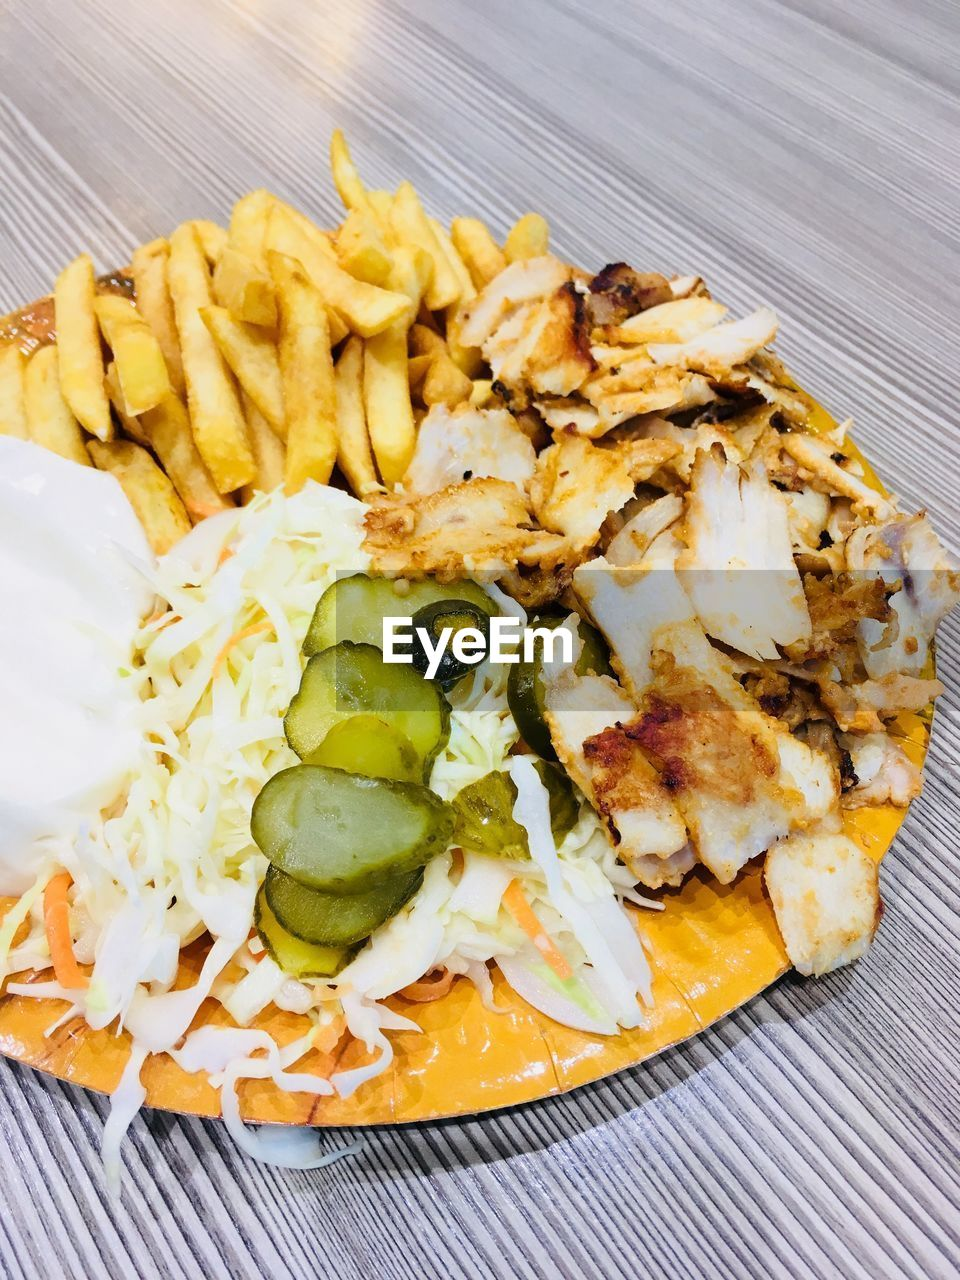 food, food and drink, ready-to-eat, potato, prepared potato, freshness, plate, healthy eating, french fries, vegetable, close-up, still life, serving size, fast food, indoors, high angle view, table, wellbeing, no people, garnish, snack, temptation, dinner